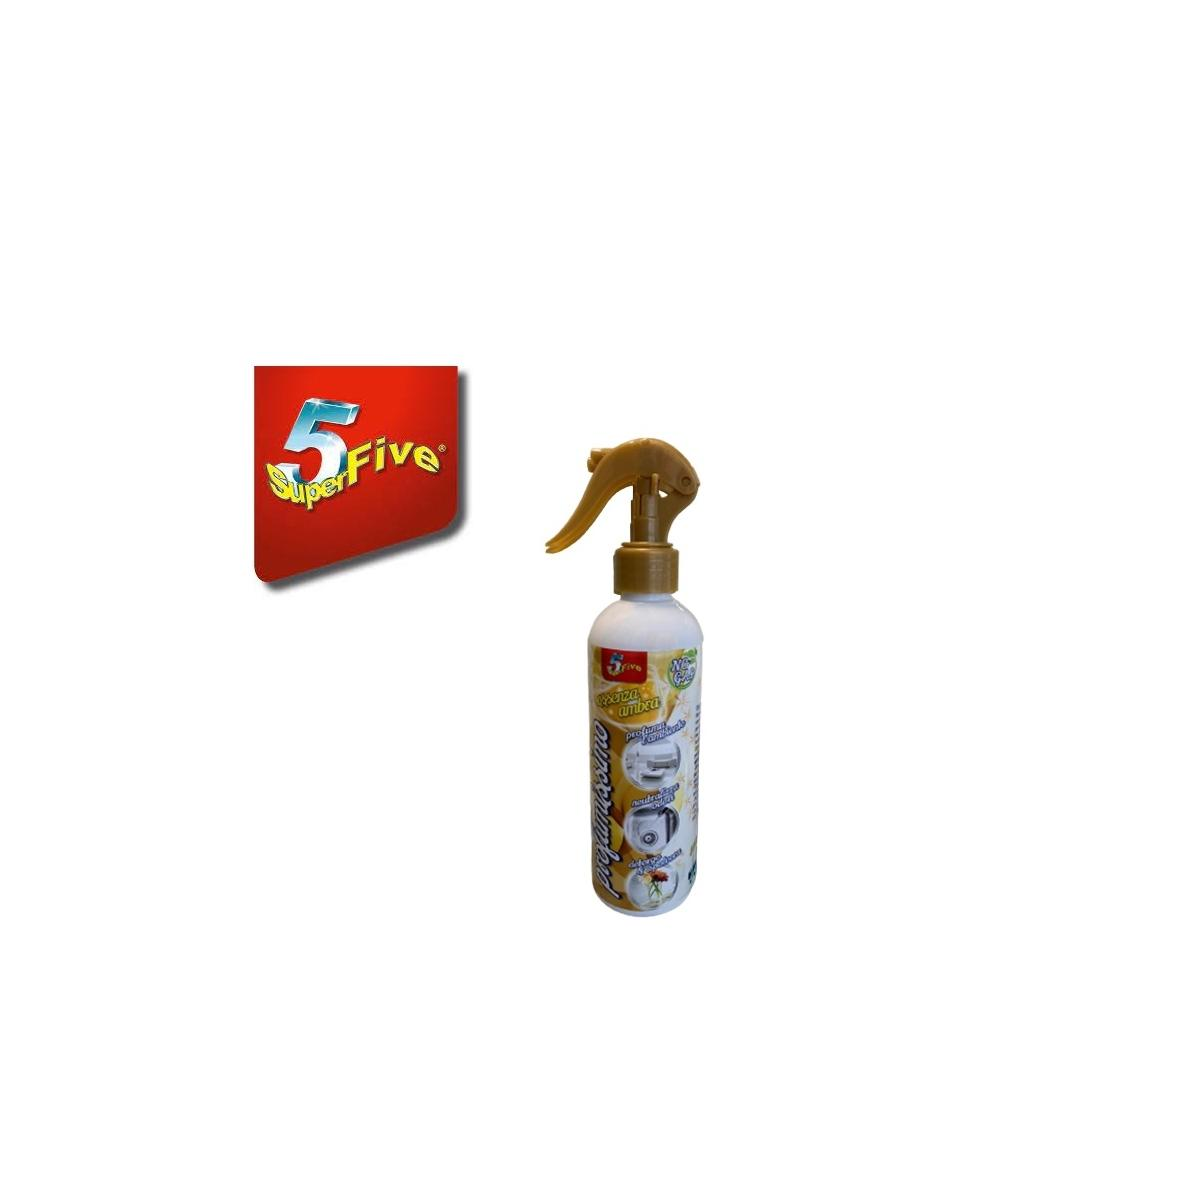 Profumissimo deo spray 750ml essenza ambra